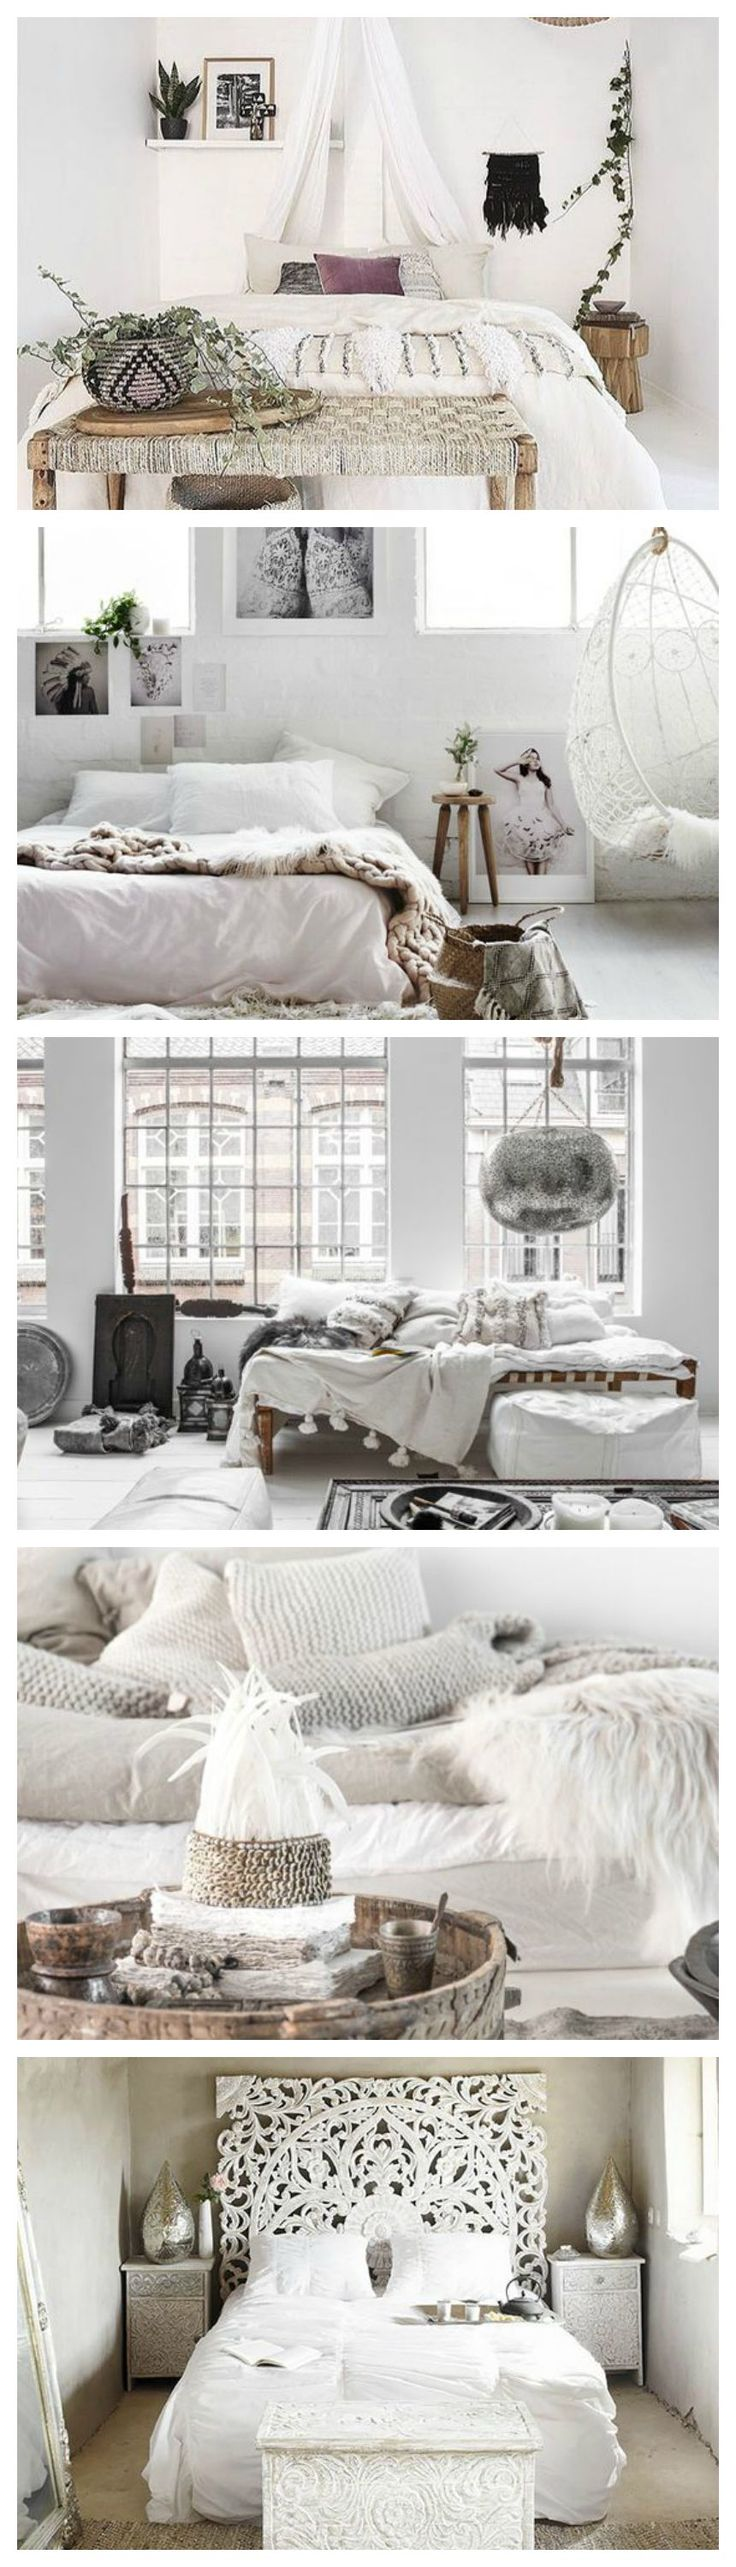 Home products company decorating ideas news amp media download contact - Bohemian Heaven Fresh Boho Chic Home Decor Inspiration